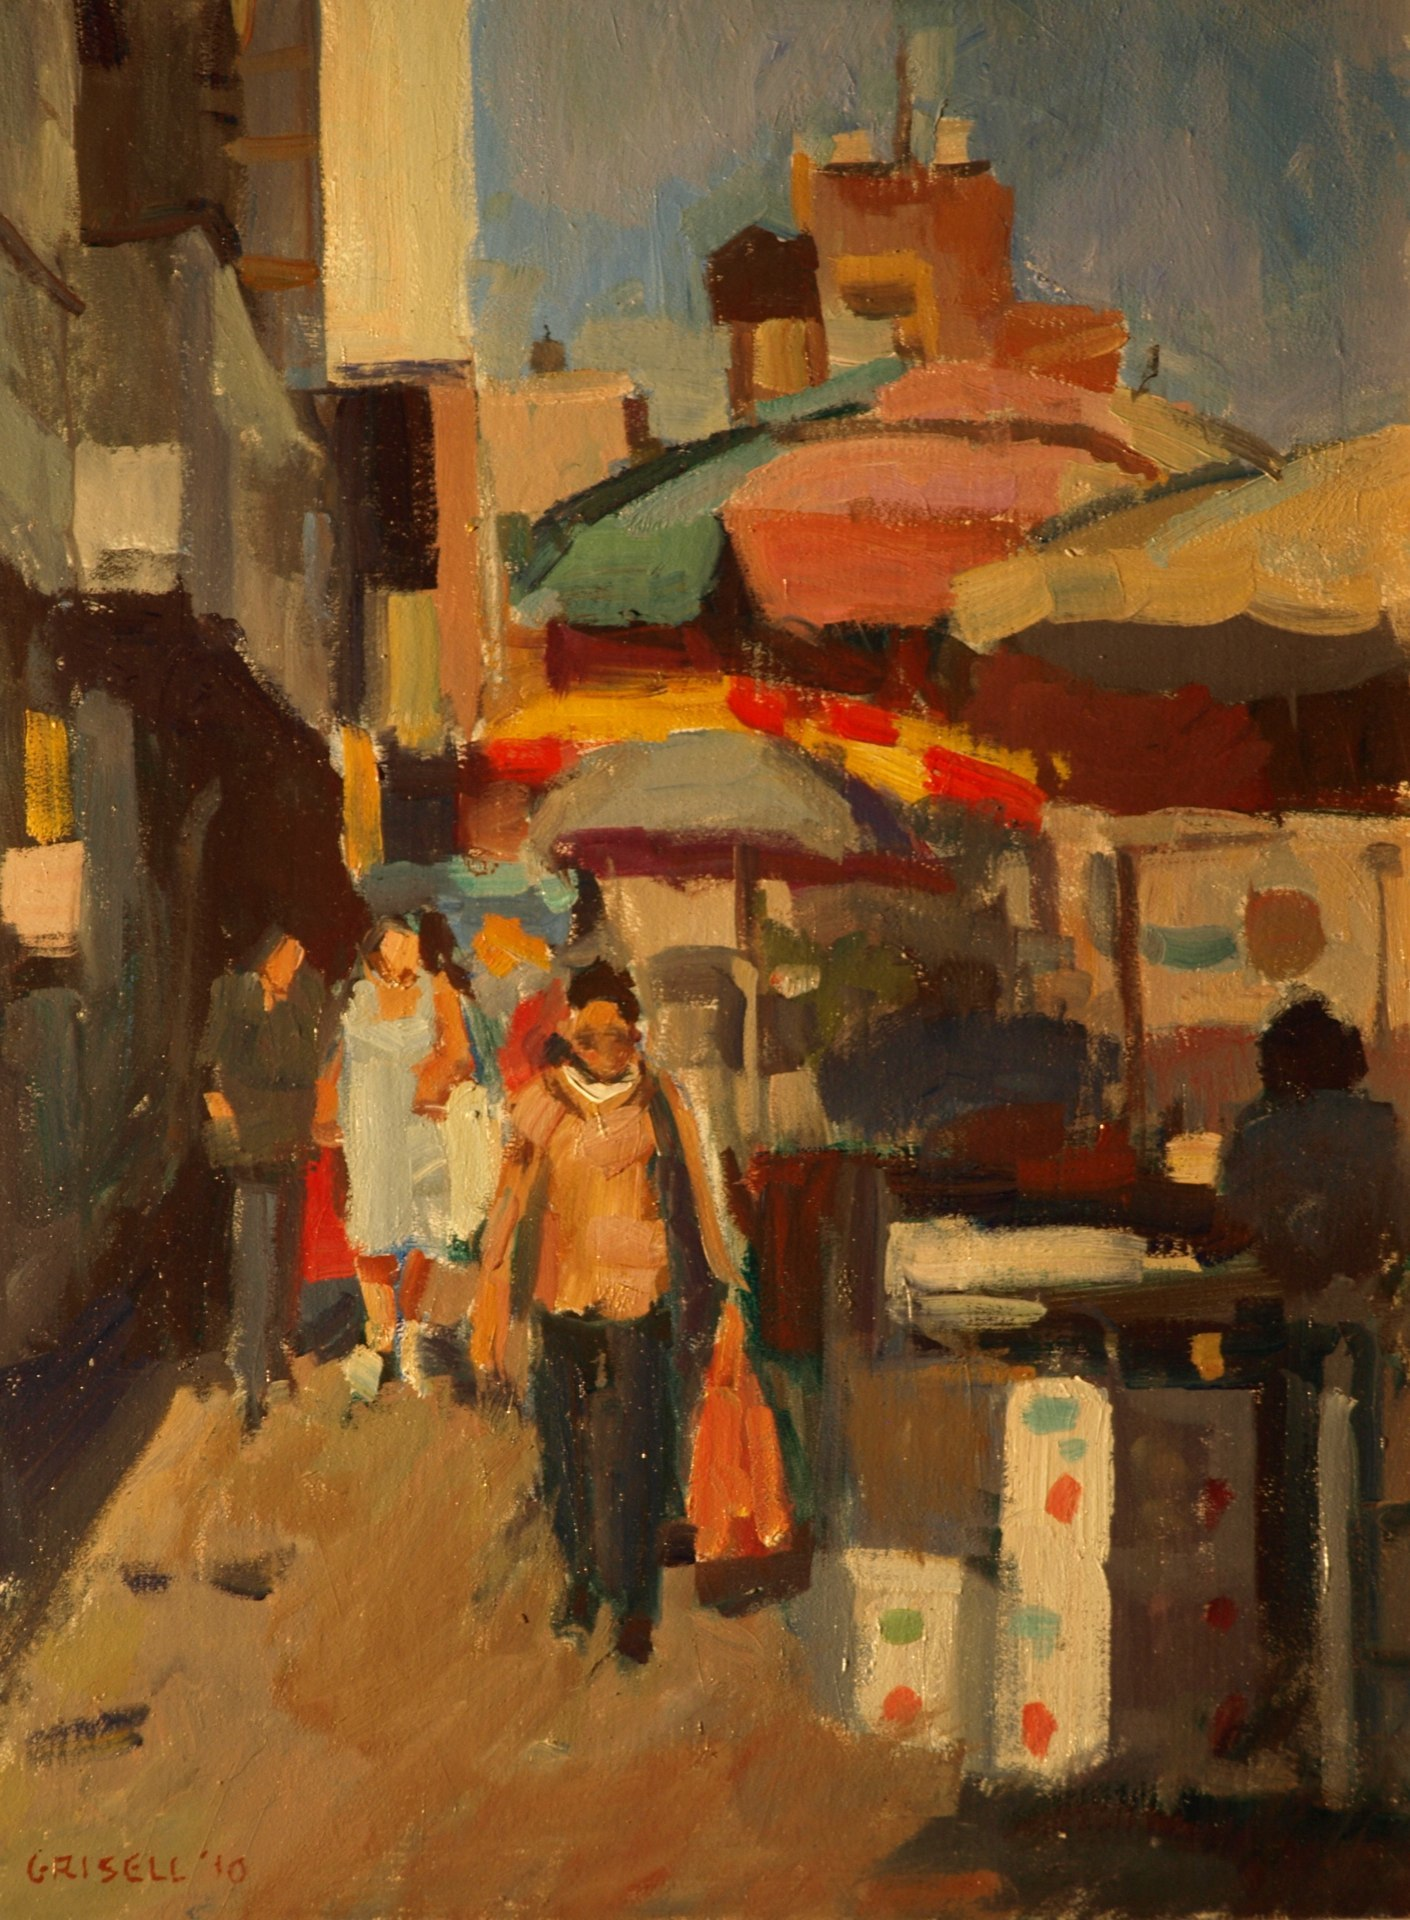 Vendors - Canal Street, Oil on Panel, 16 x 12 Inches, by Susan Grisell, $300